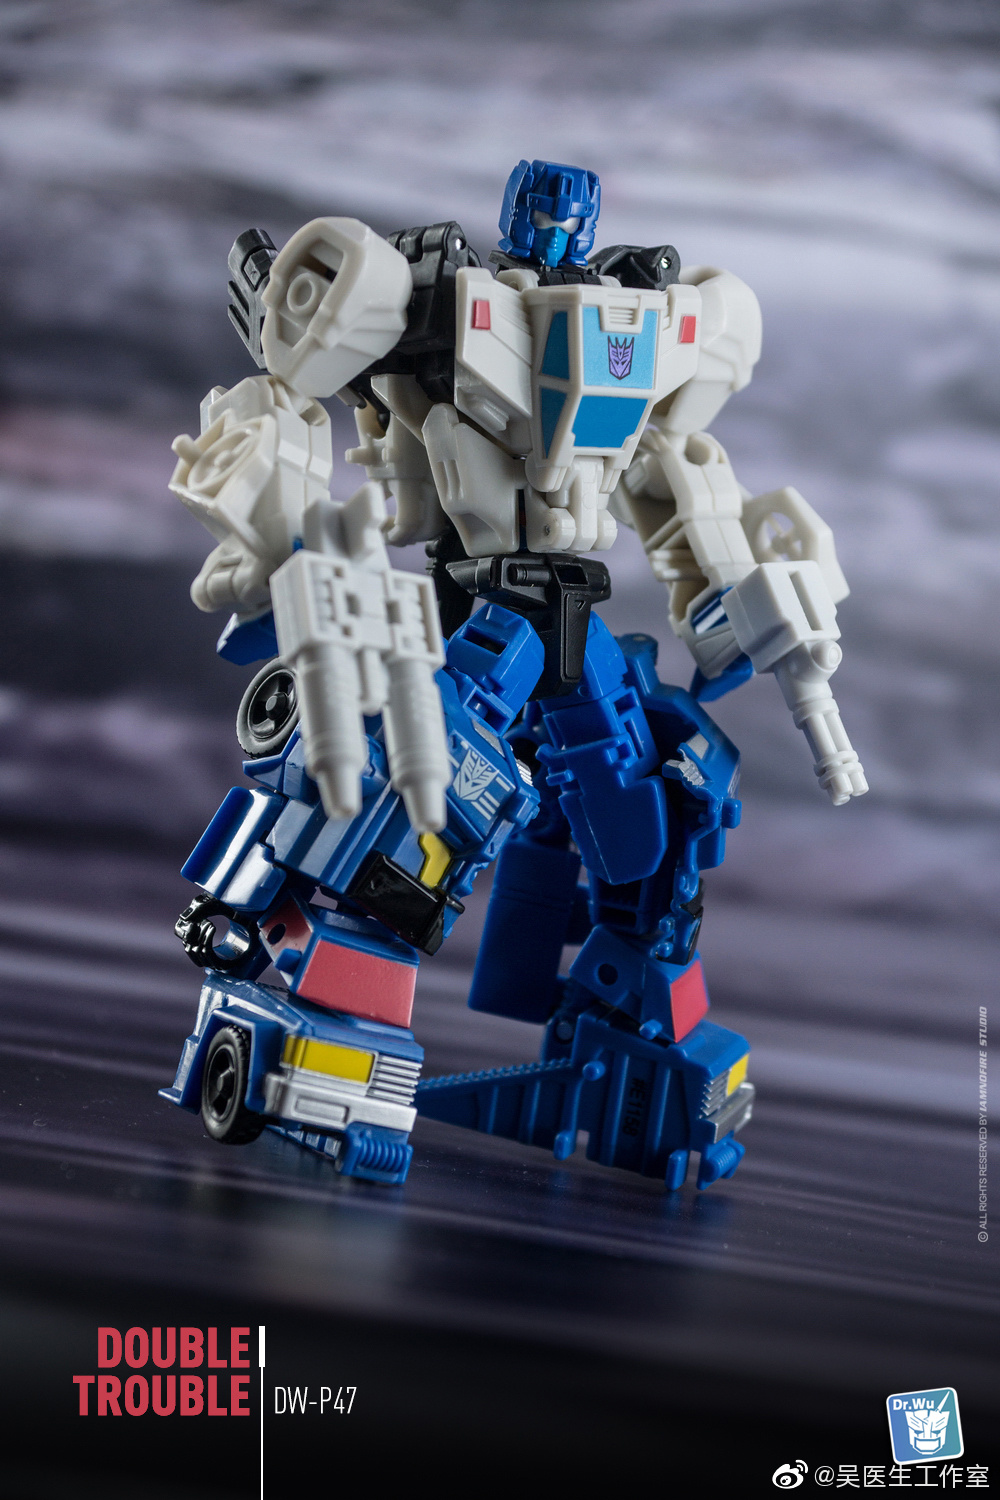 Dr.Wu DW-P47 Kits For Transformers Battletrap Double Trouble Toys New